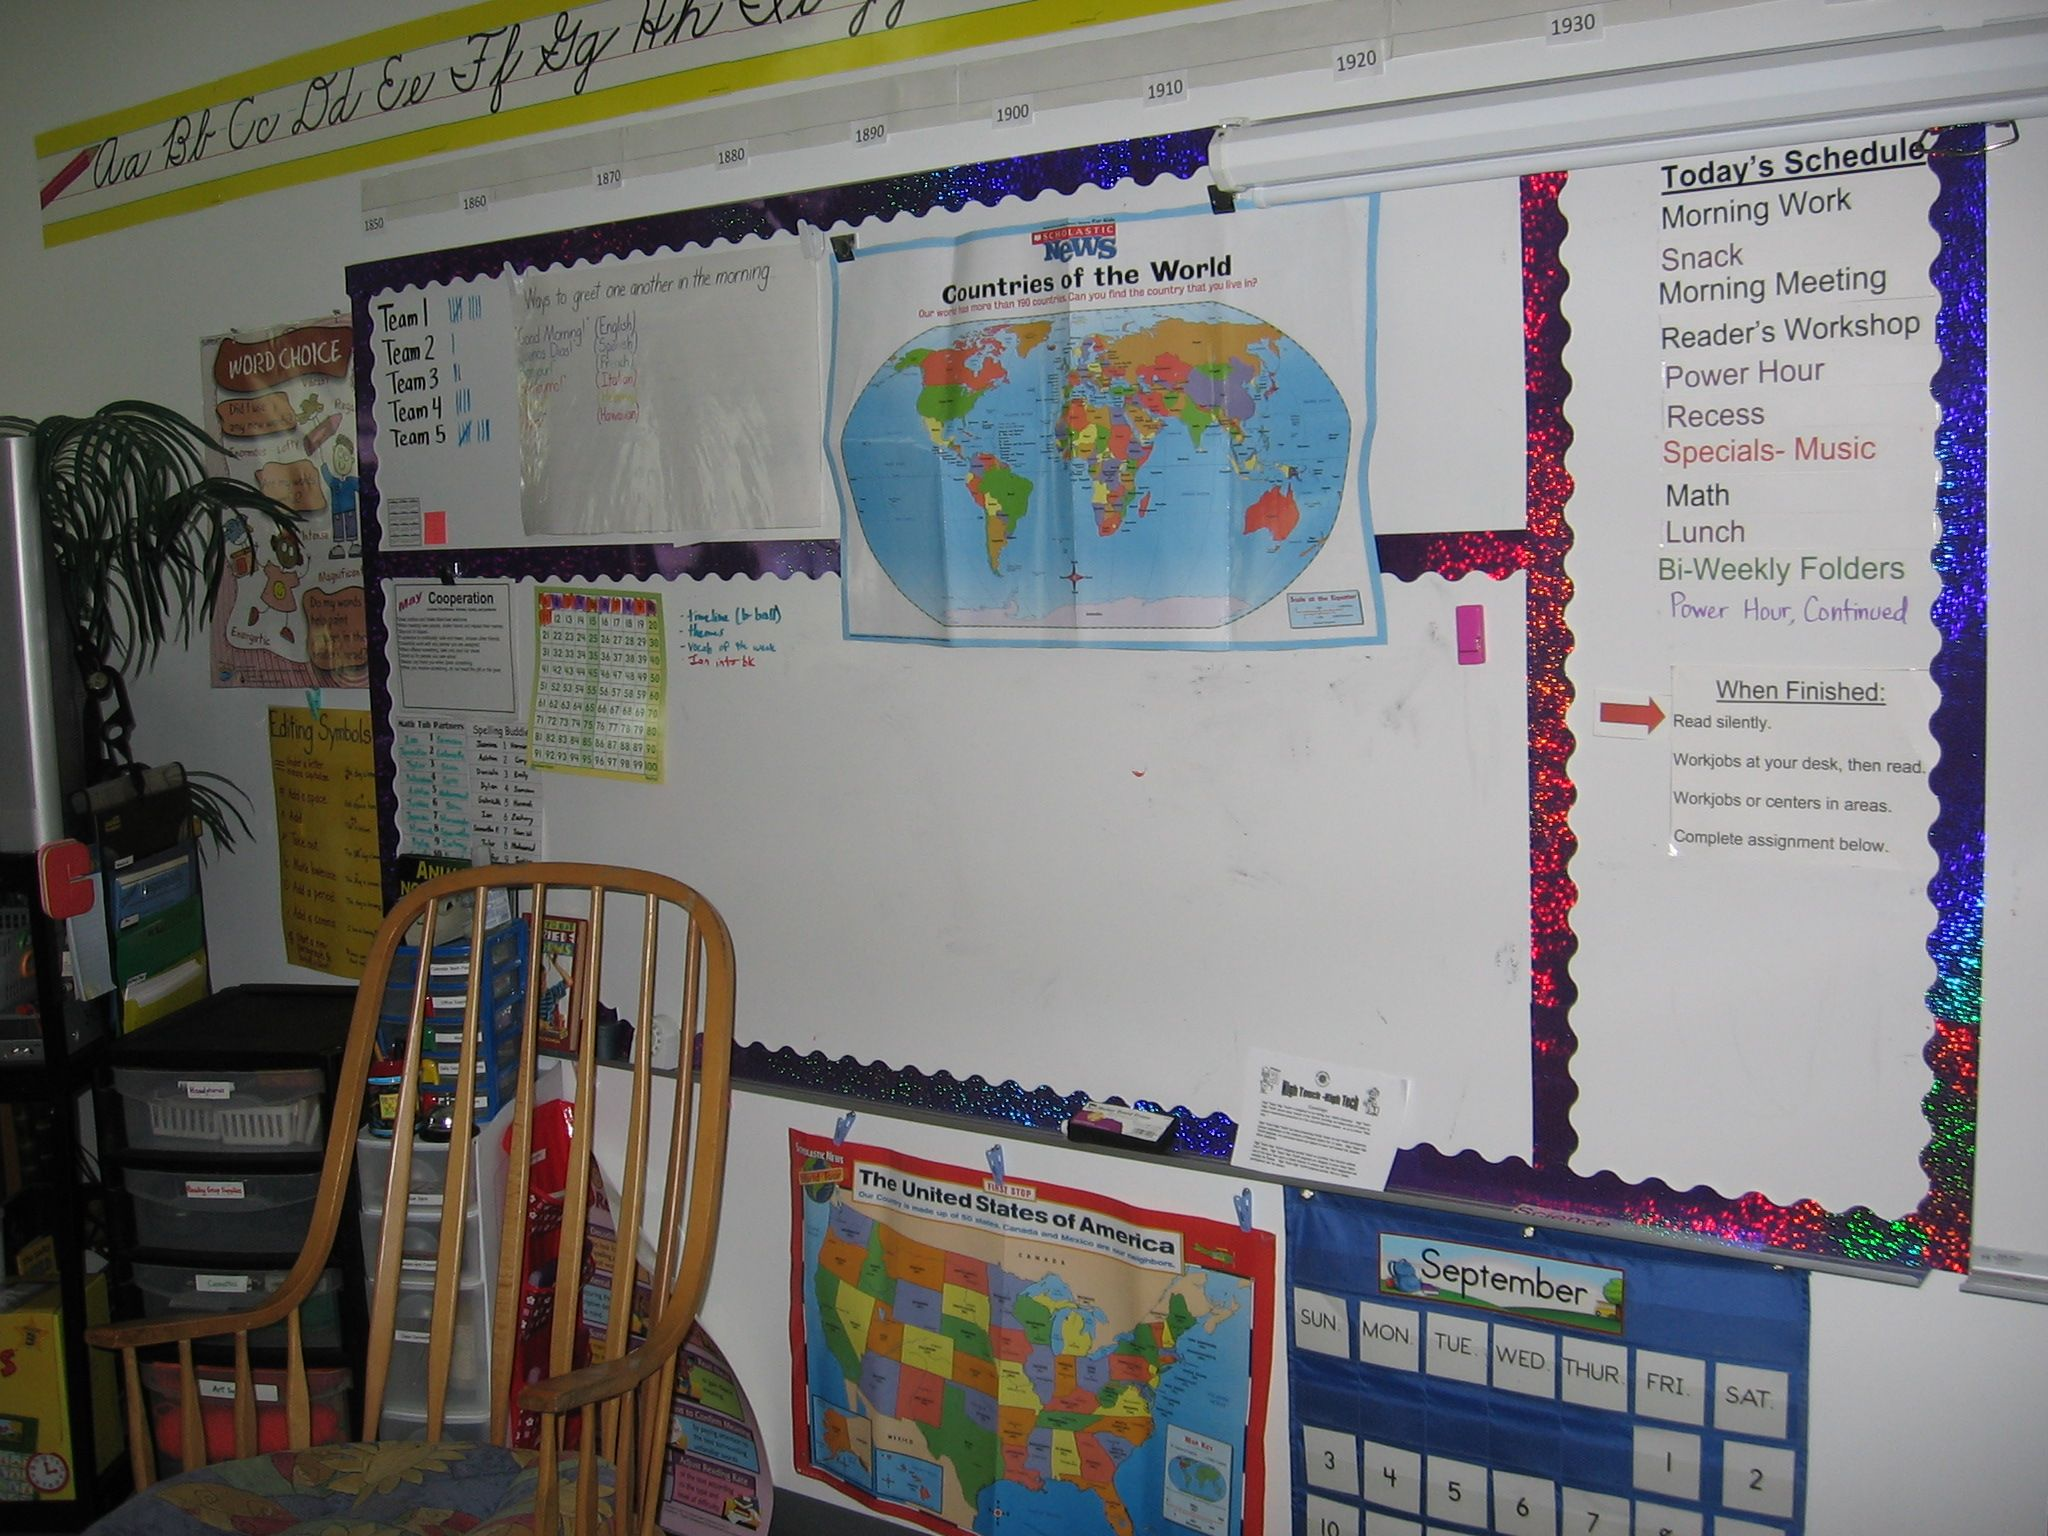 Bulletin boarders for white board sectioning - whodda thunk it?! & Creating a Cozy Classroom   Pinterest   Bulletin board Classroom ...